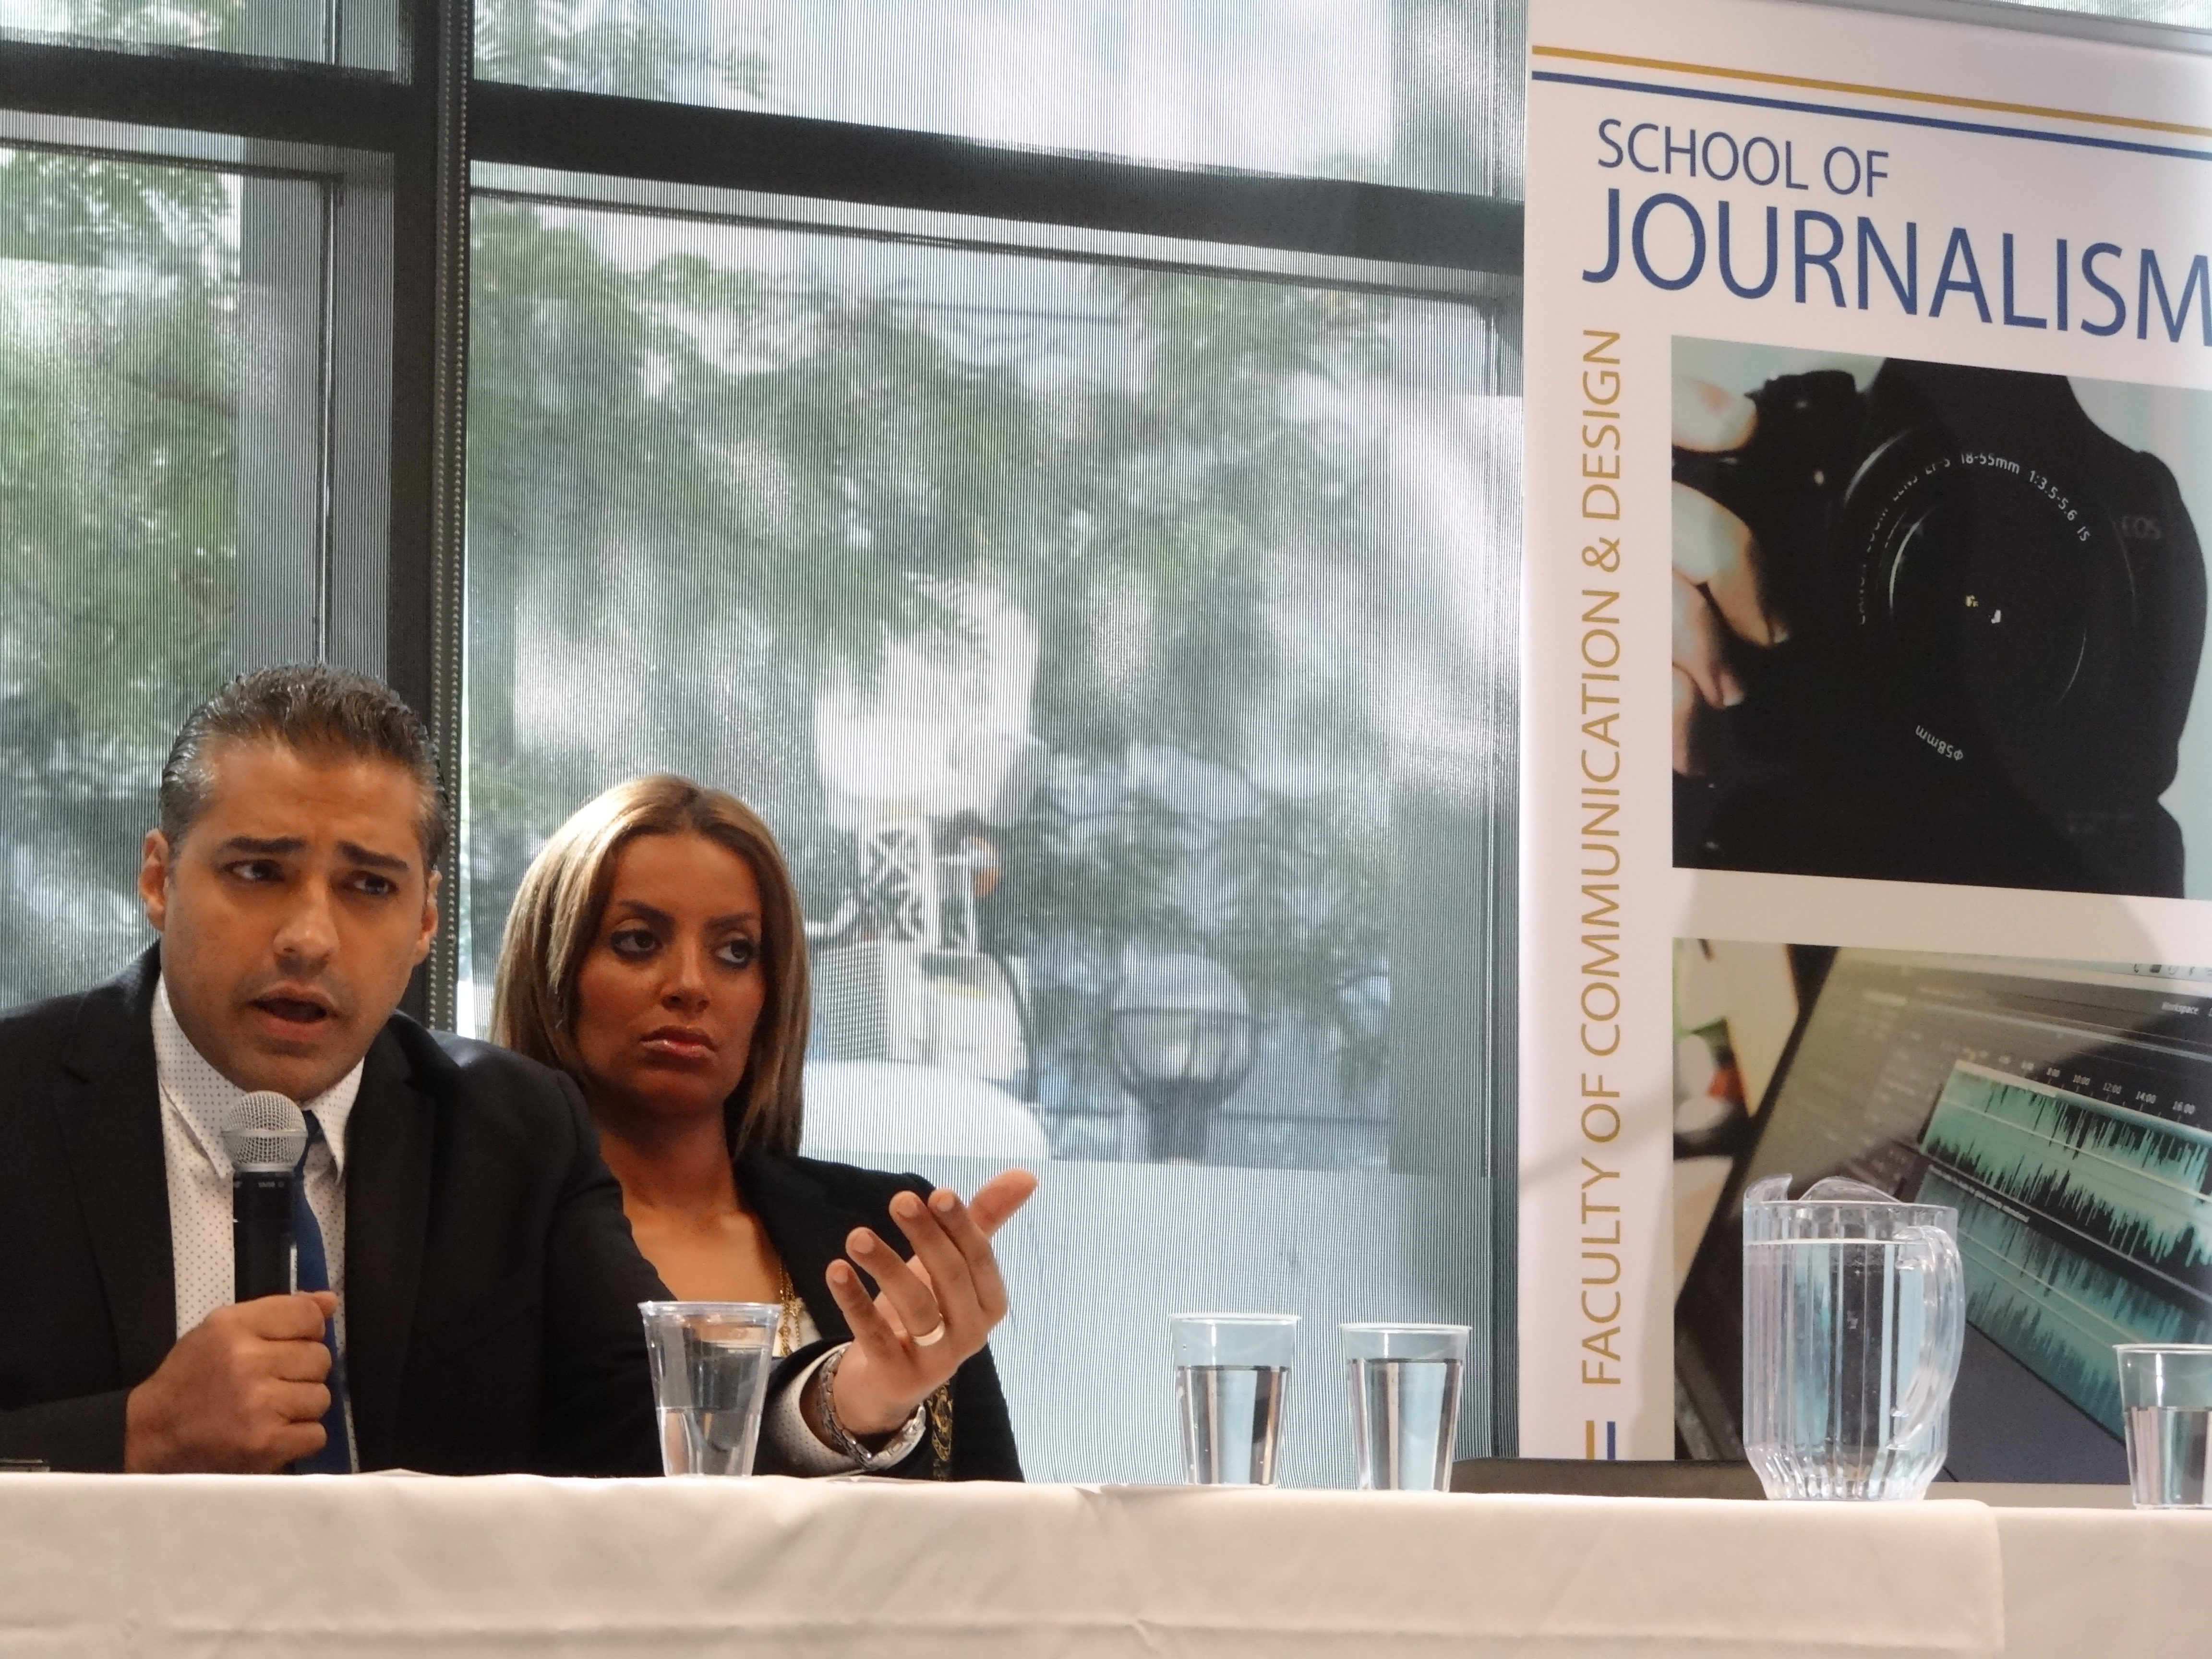 Recently freed journalist Mohamed Fahmy addresses a news conference hosted by Canadian Journalists for Free Expression at Ryerson University's School of Journalism.